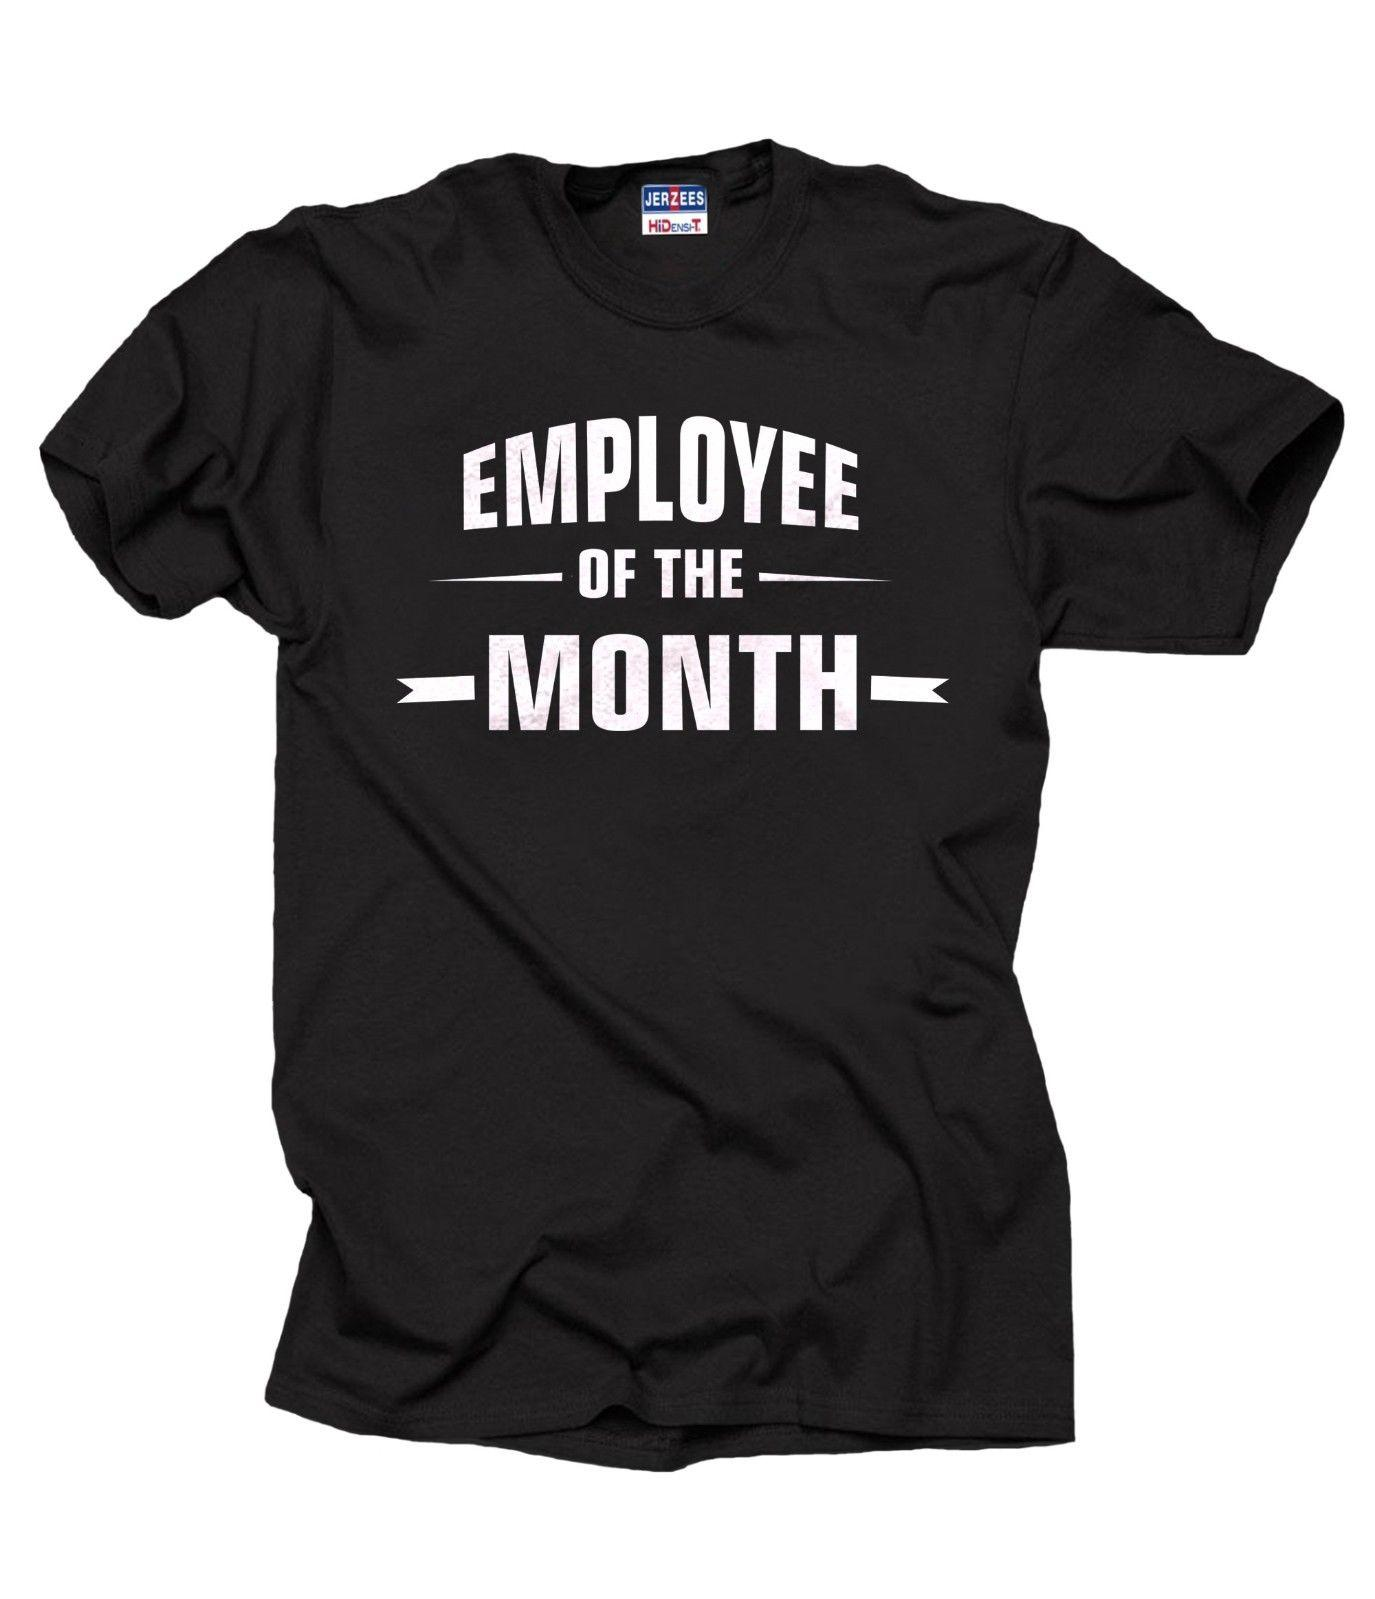 b99f5d5ec Employee Of The Month T Shirt Gift For Best Employee Tee Shirt Funny Unisex  Casual Tshirt Top T Shirts In A Day Awesome Tee Shirt Designs From ...